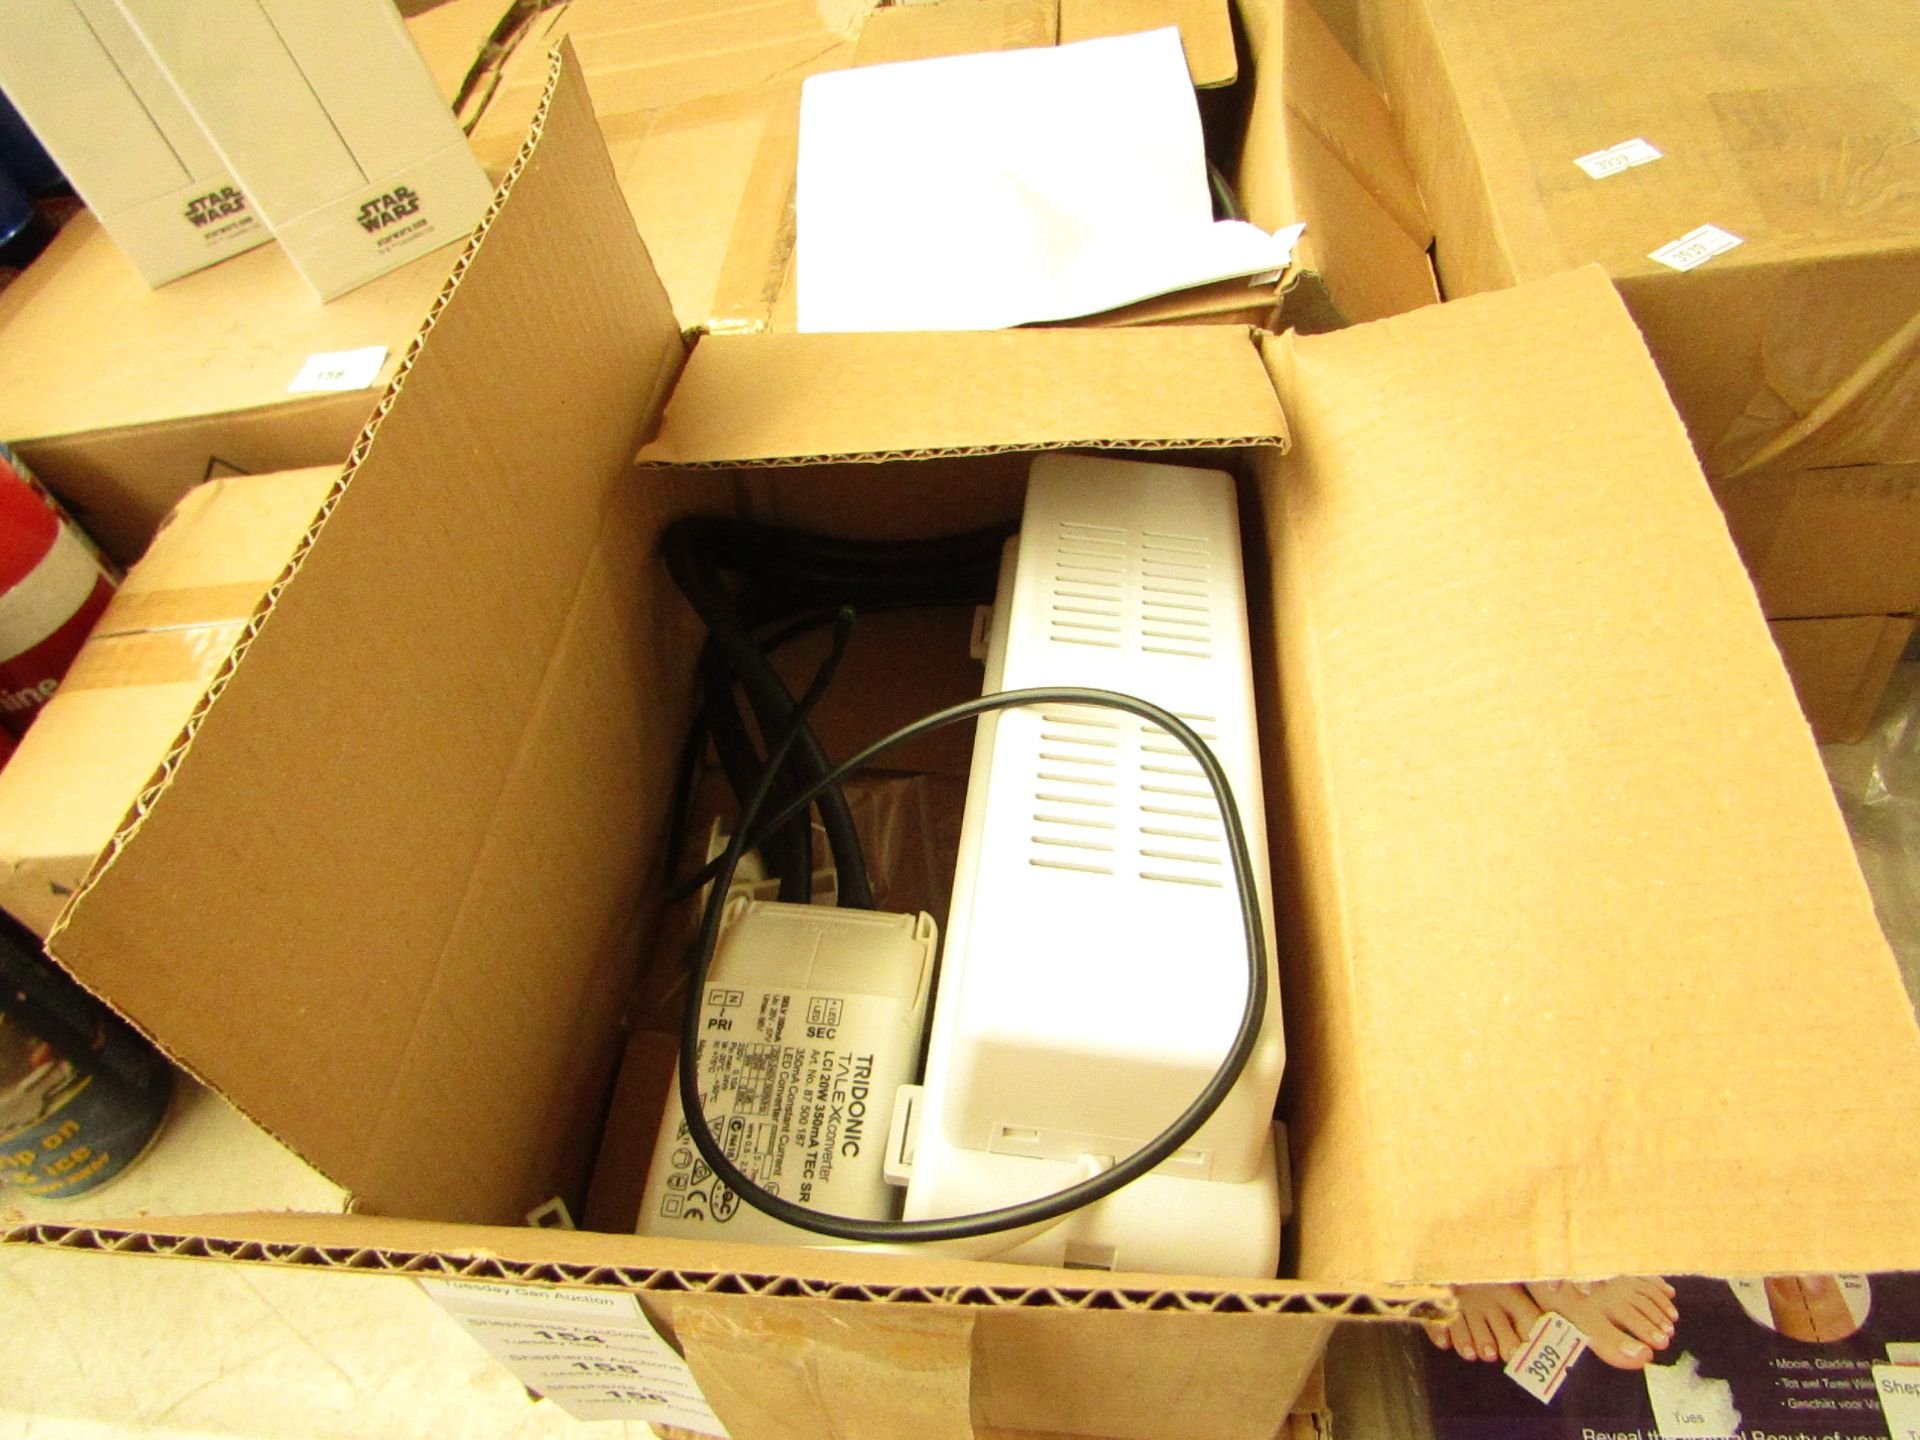 Los 155 - Emergency light tester kit, untested and boxed.